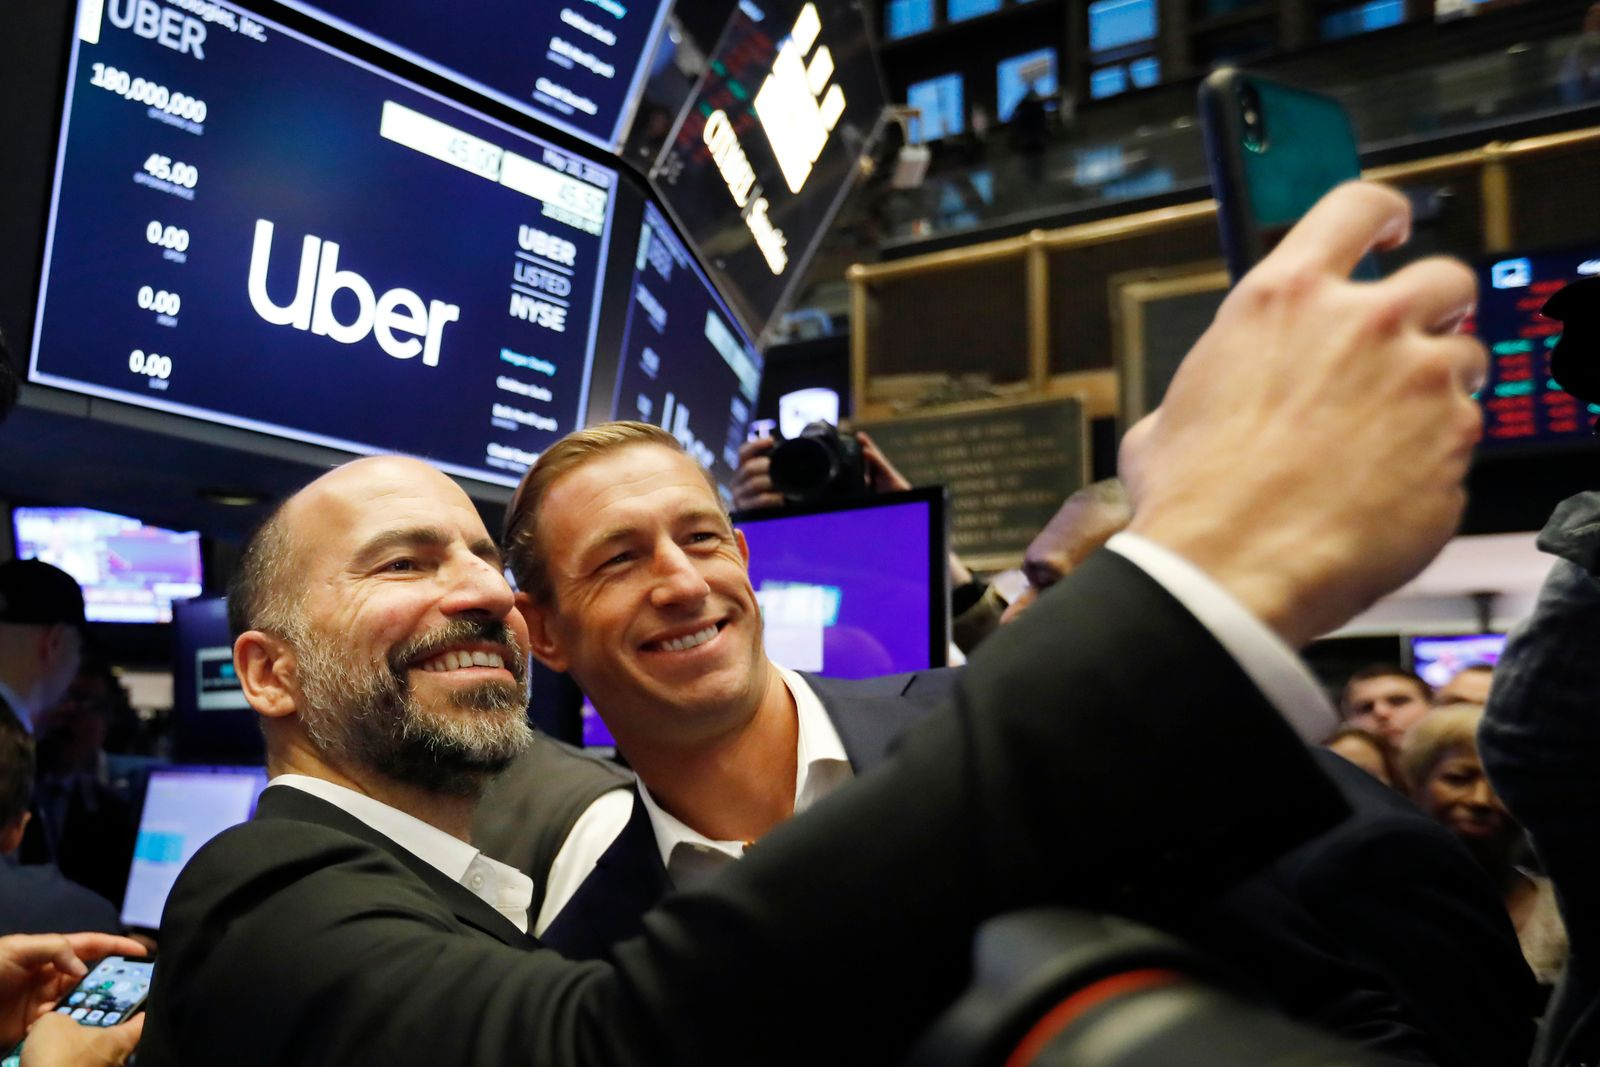 Uber CEO Dara Khosrowshahi, left, and Ryan Graves, a board member, pose for a photo before the company lists during its initial public offering at the New York Stock Exchange, Friday, May 10, 2019. (AP Photo/Richard Drew)